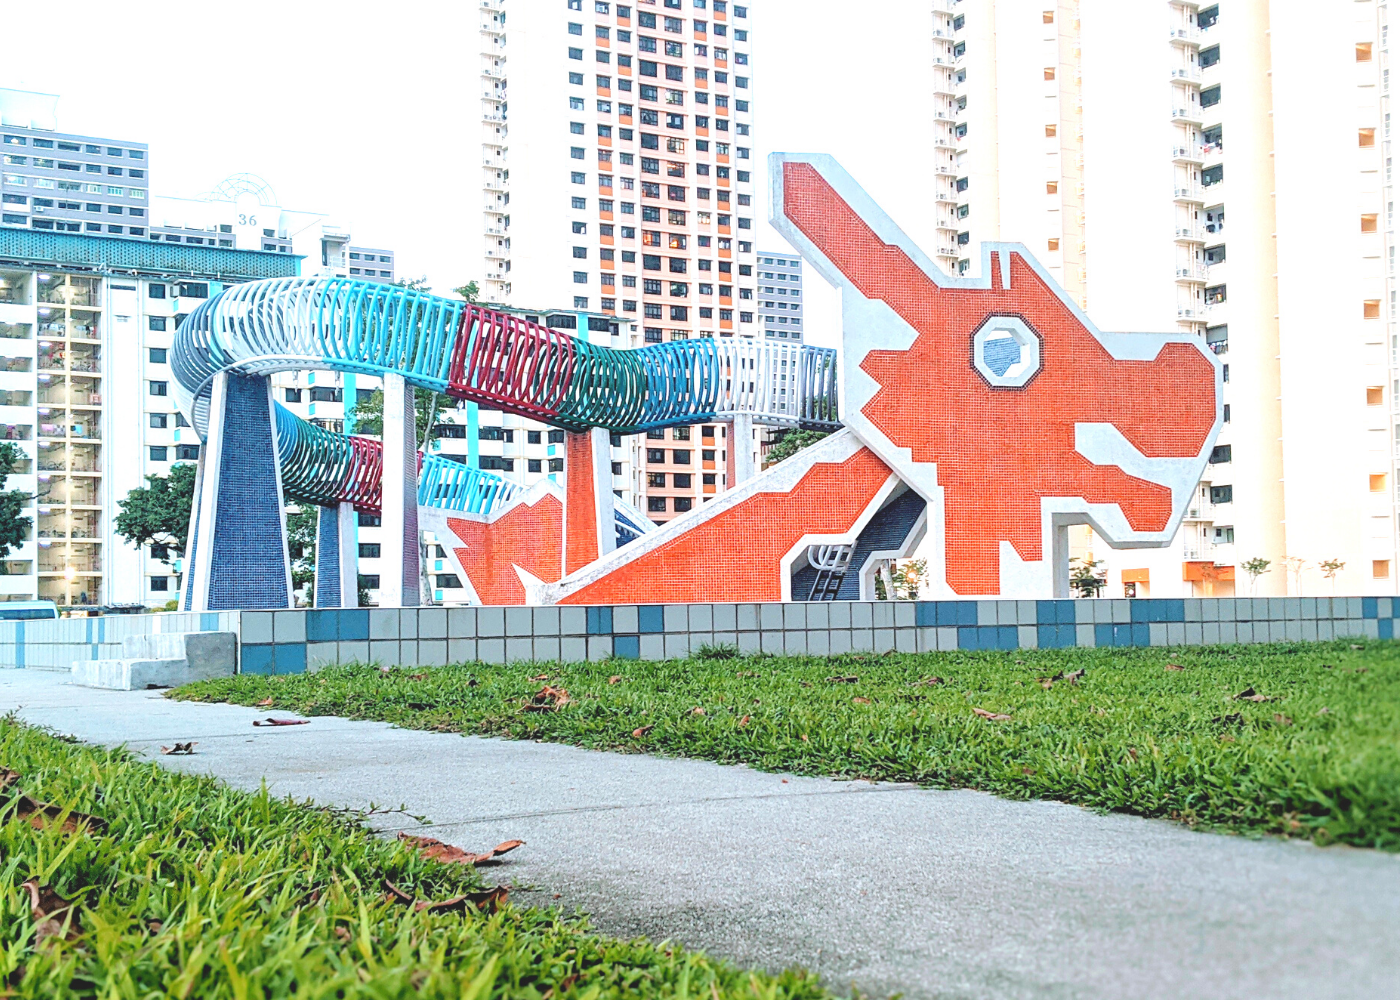 Toa Payoh guide: Lorong 6 dragon playground